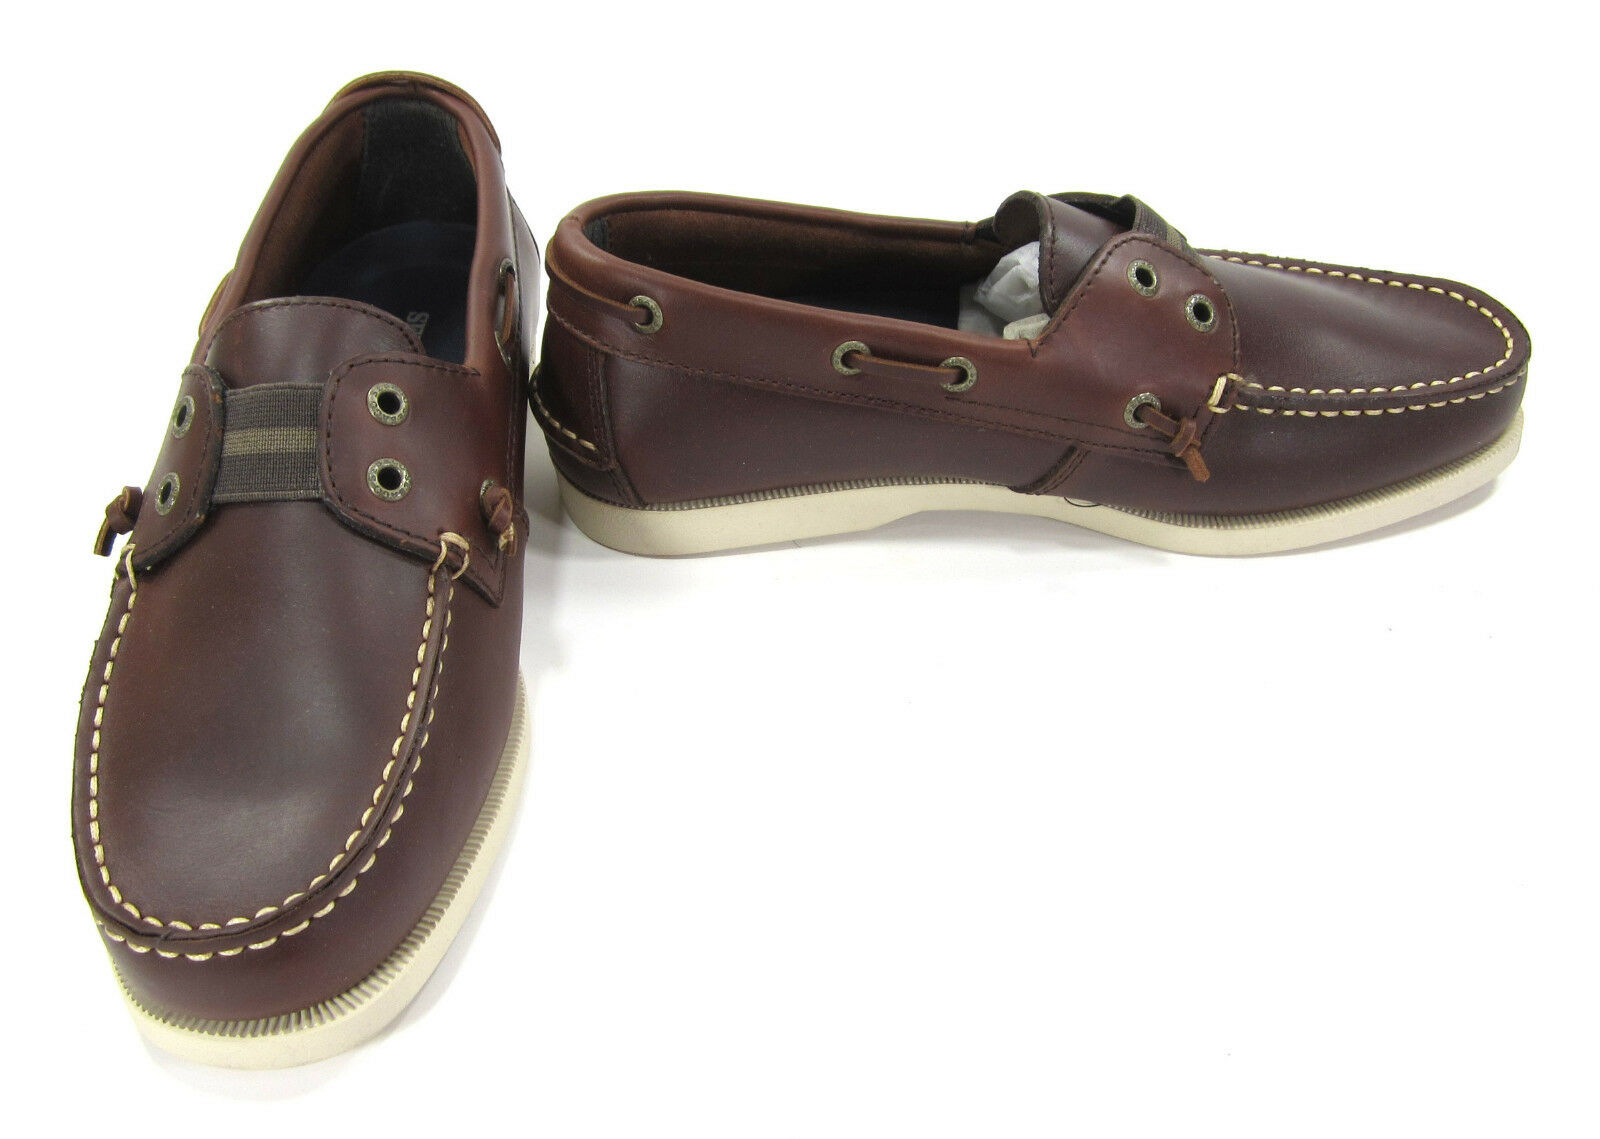 Sebago Boat Shoes Wharf Slip-On Loafers Brown Topsiders Size 8